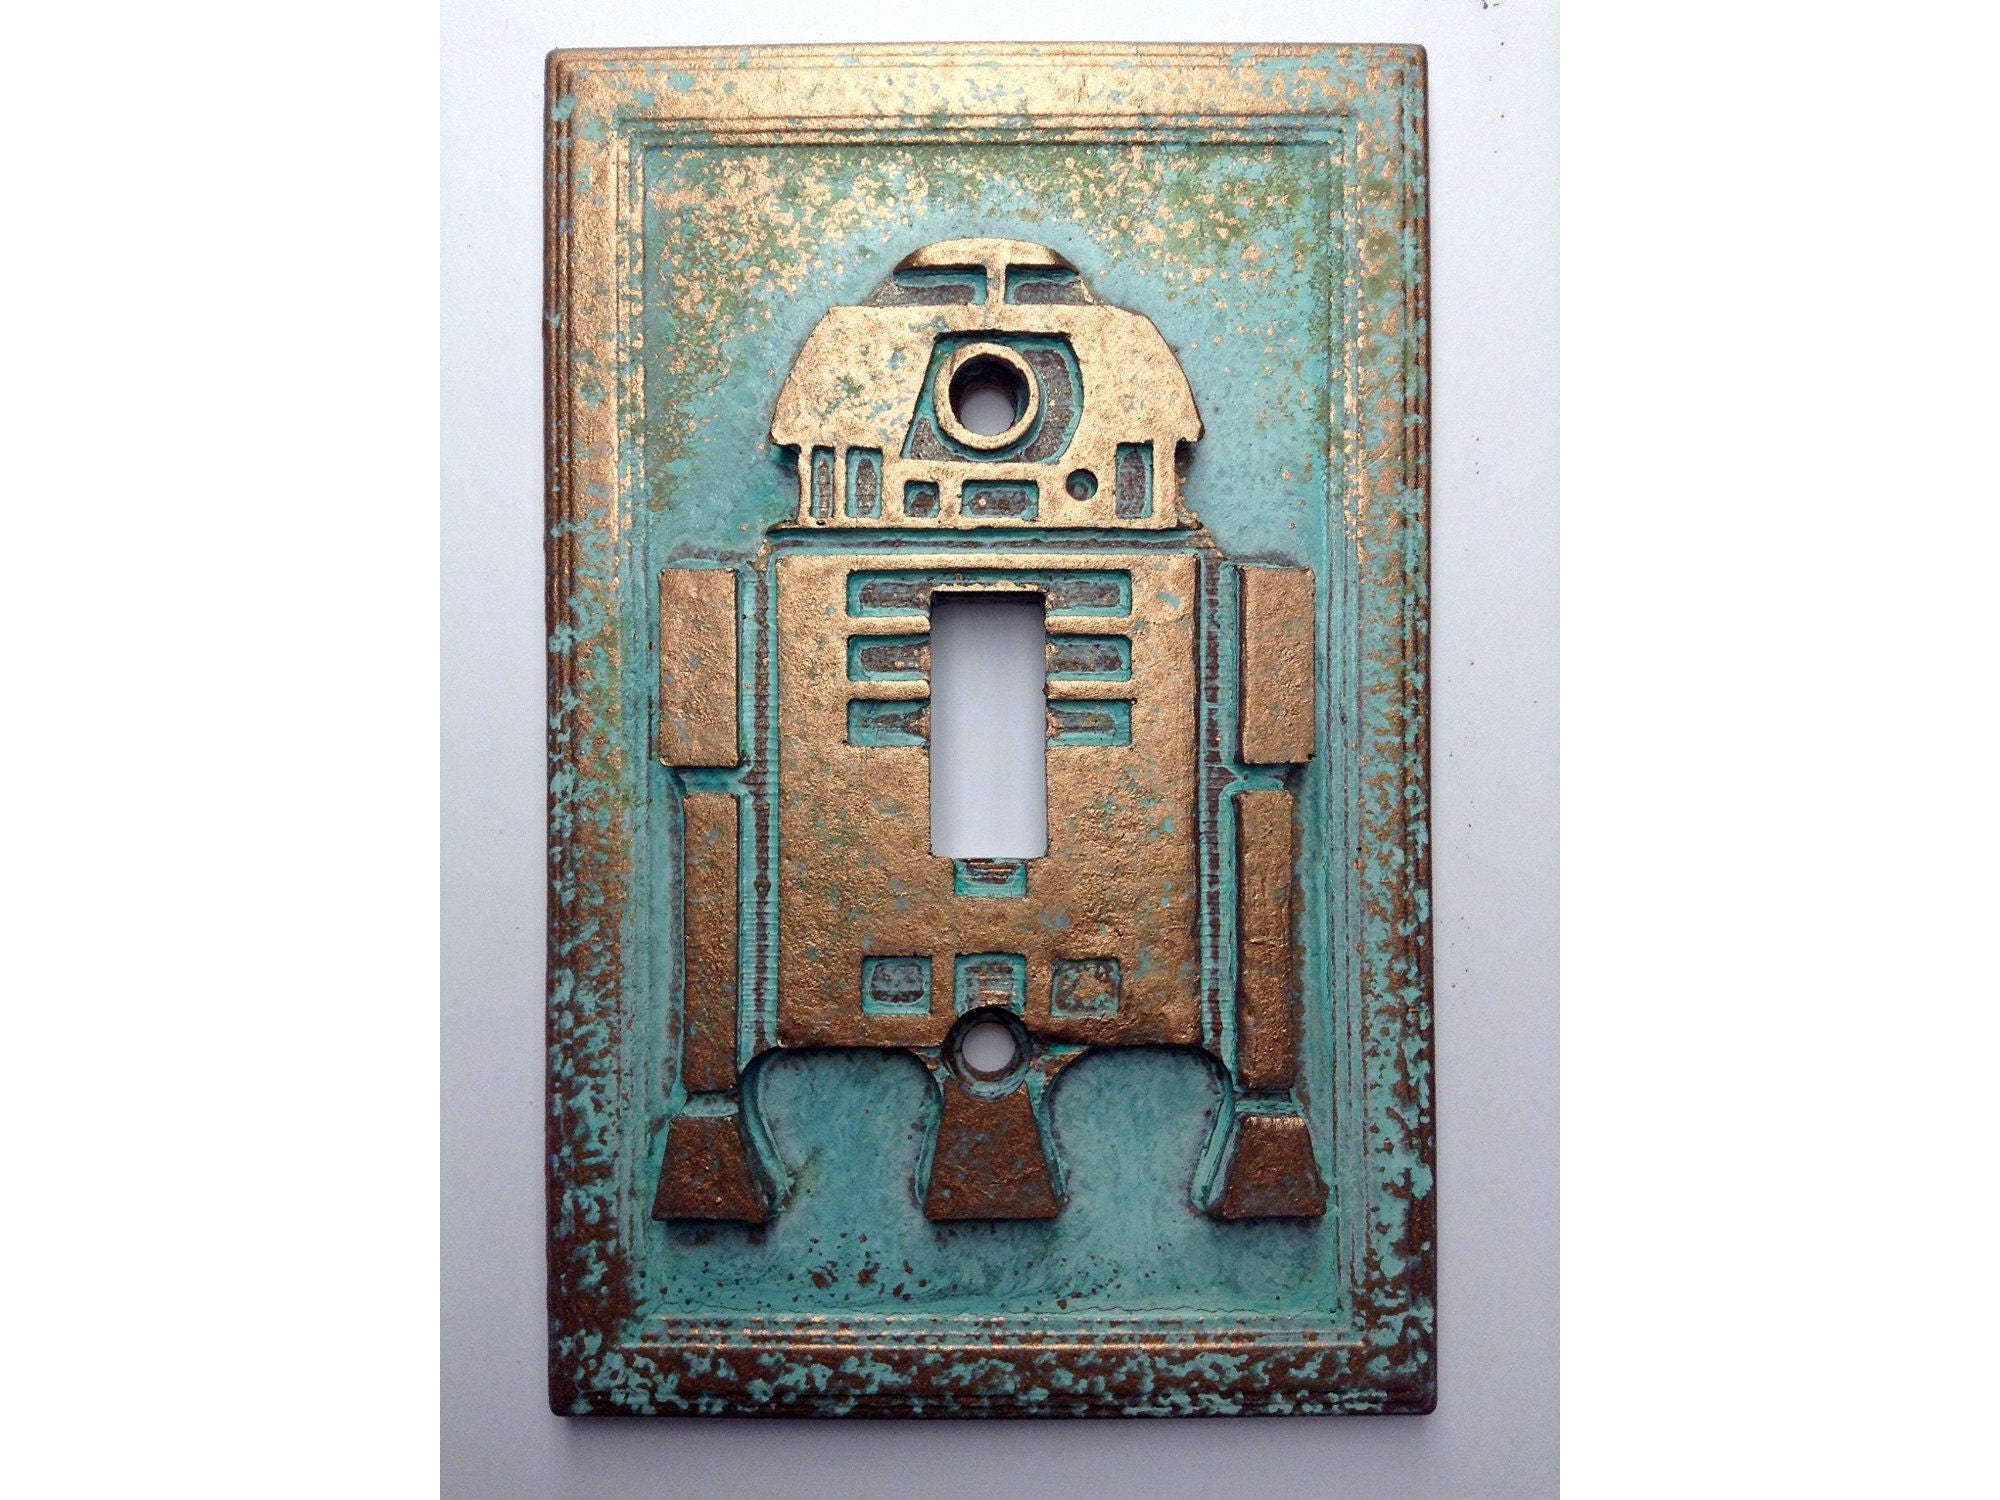 R2d2 Star Wars Light Switch Cover Aged Copper Patina Or